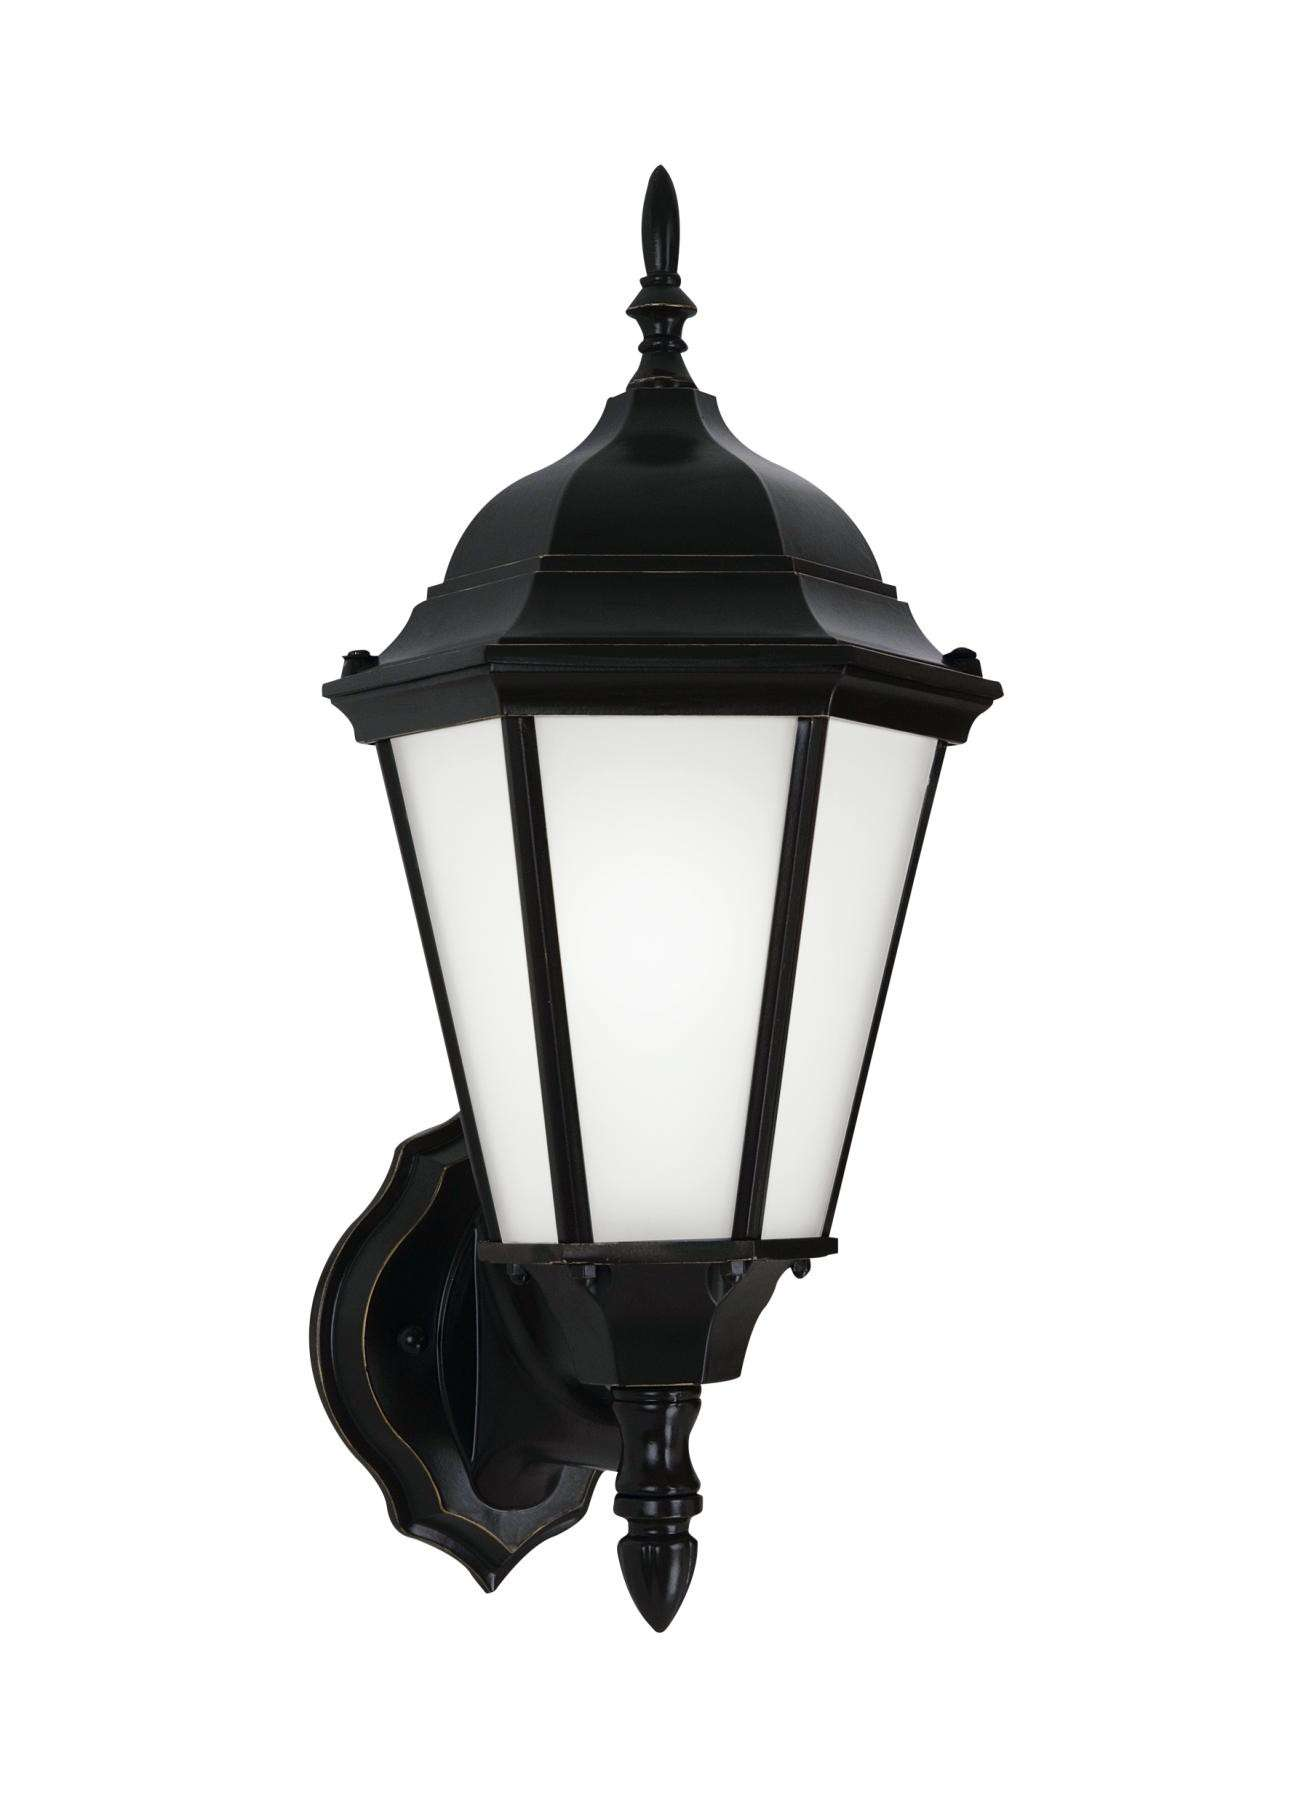 Bakersville - One Light Outdoor Wall Lantern in Black